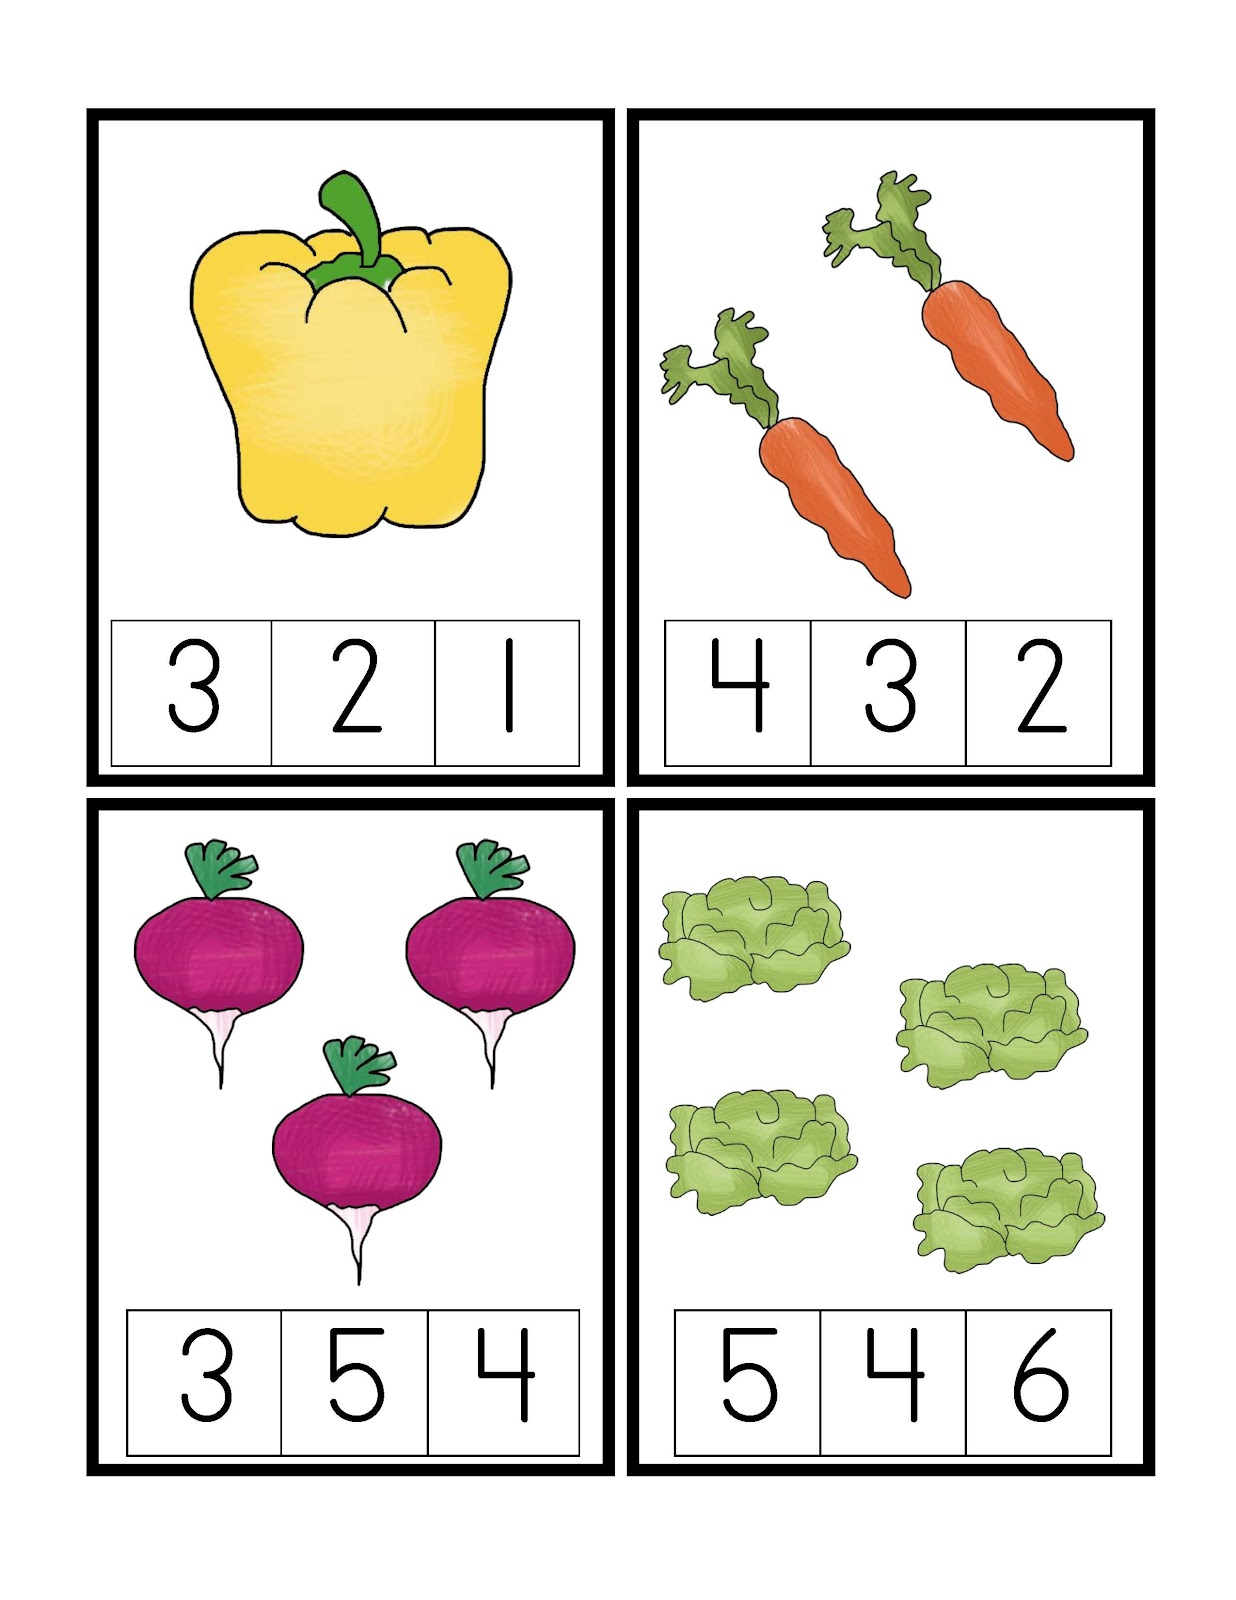 Preschool printables construction printables counting and for Gardening tools 6 letters